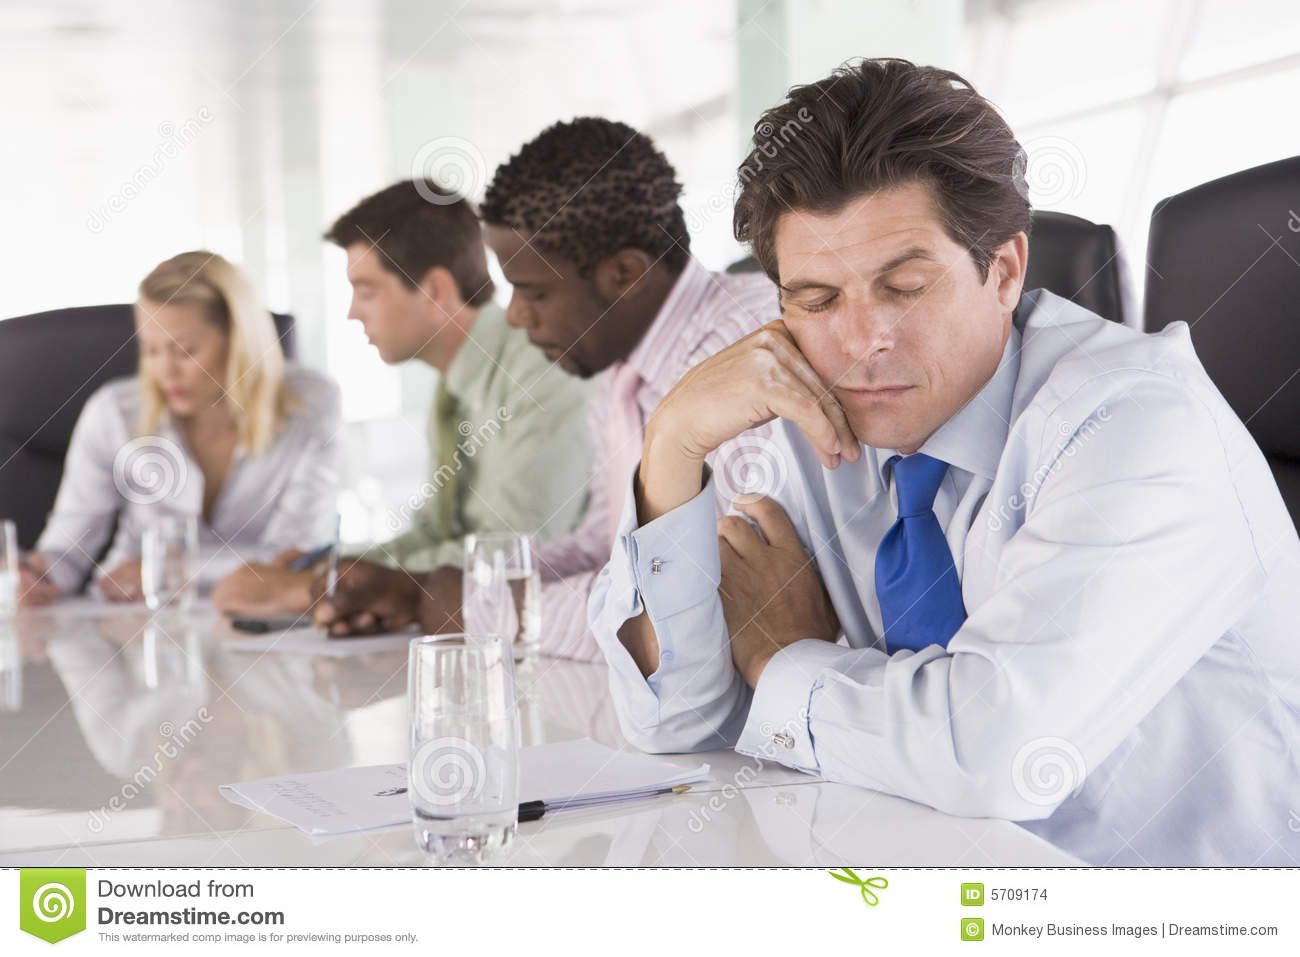 Four businesspeople in room with one man asleep